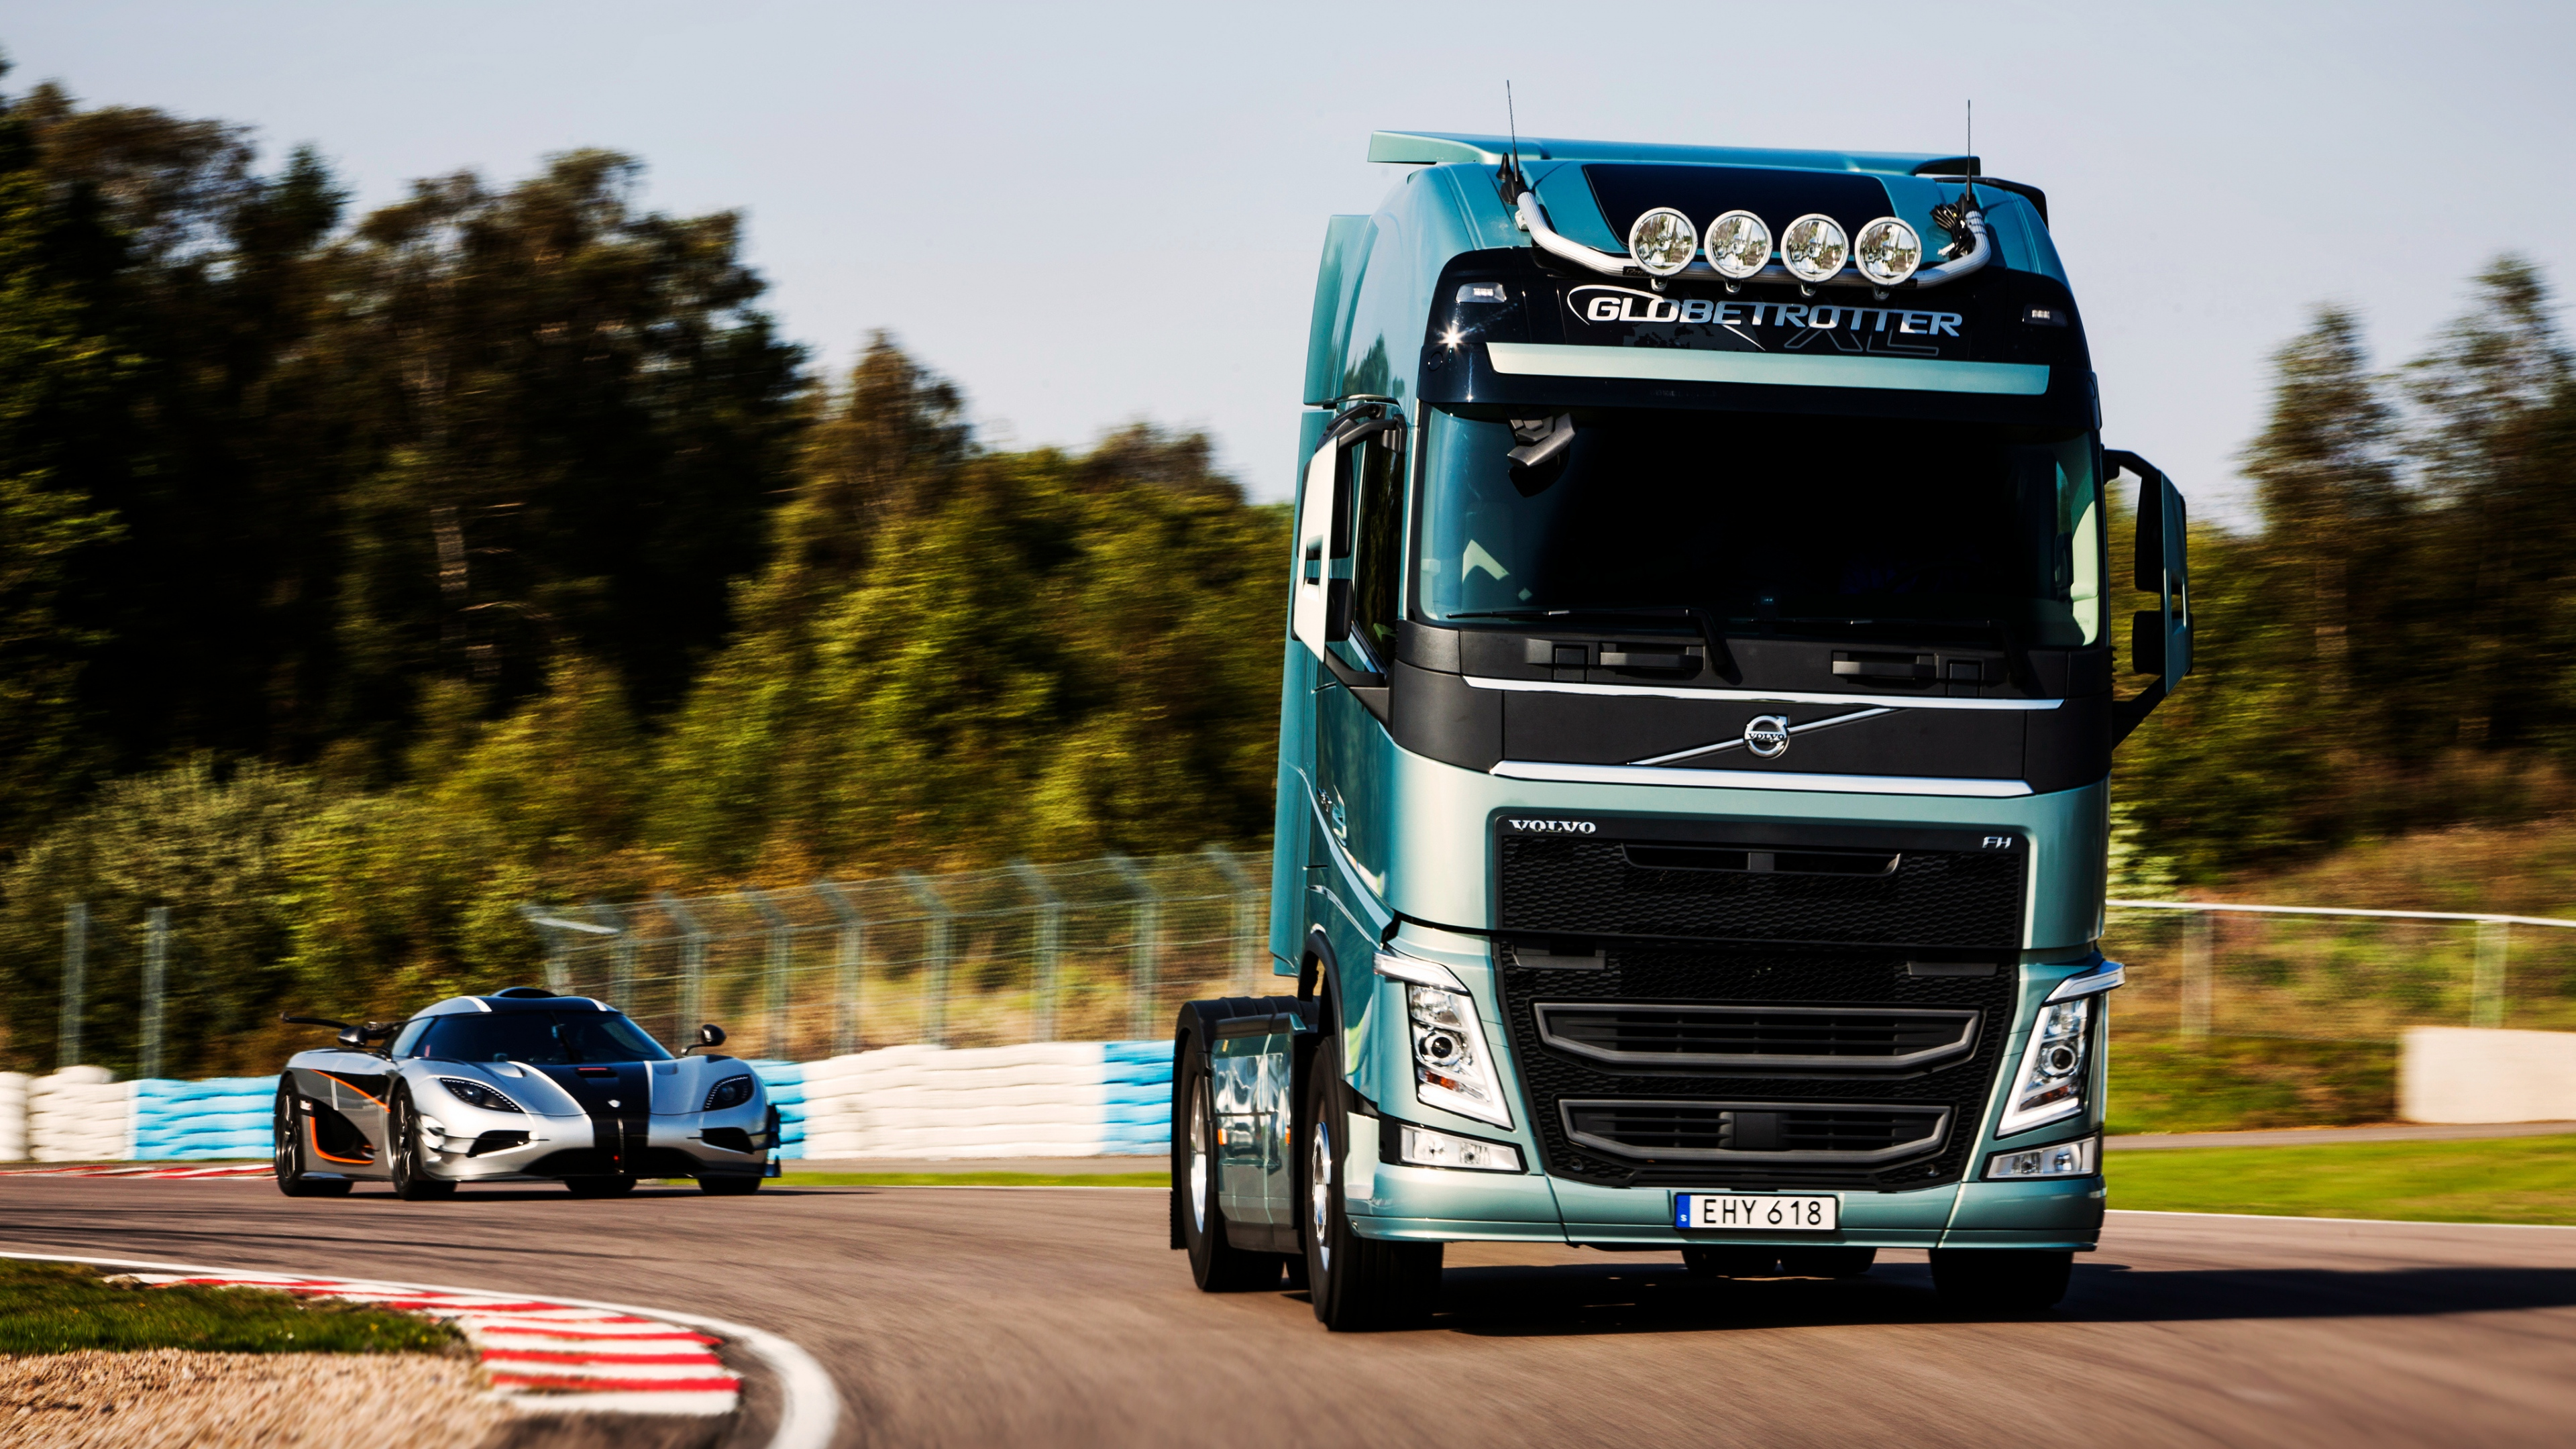 volvo truck and car 1539104496 - Volvo Truck And Car - volvo wallpapers, truck wallpapers, track wallpapers, racing wallpapers, cars wallpapers